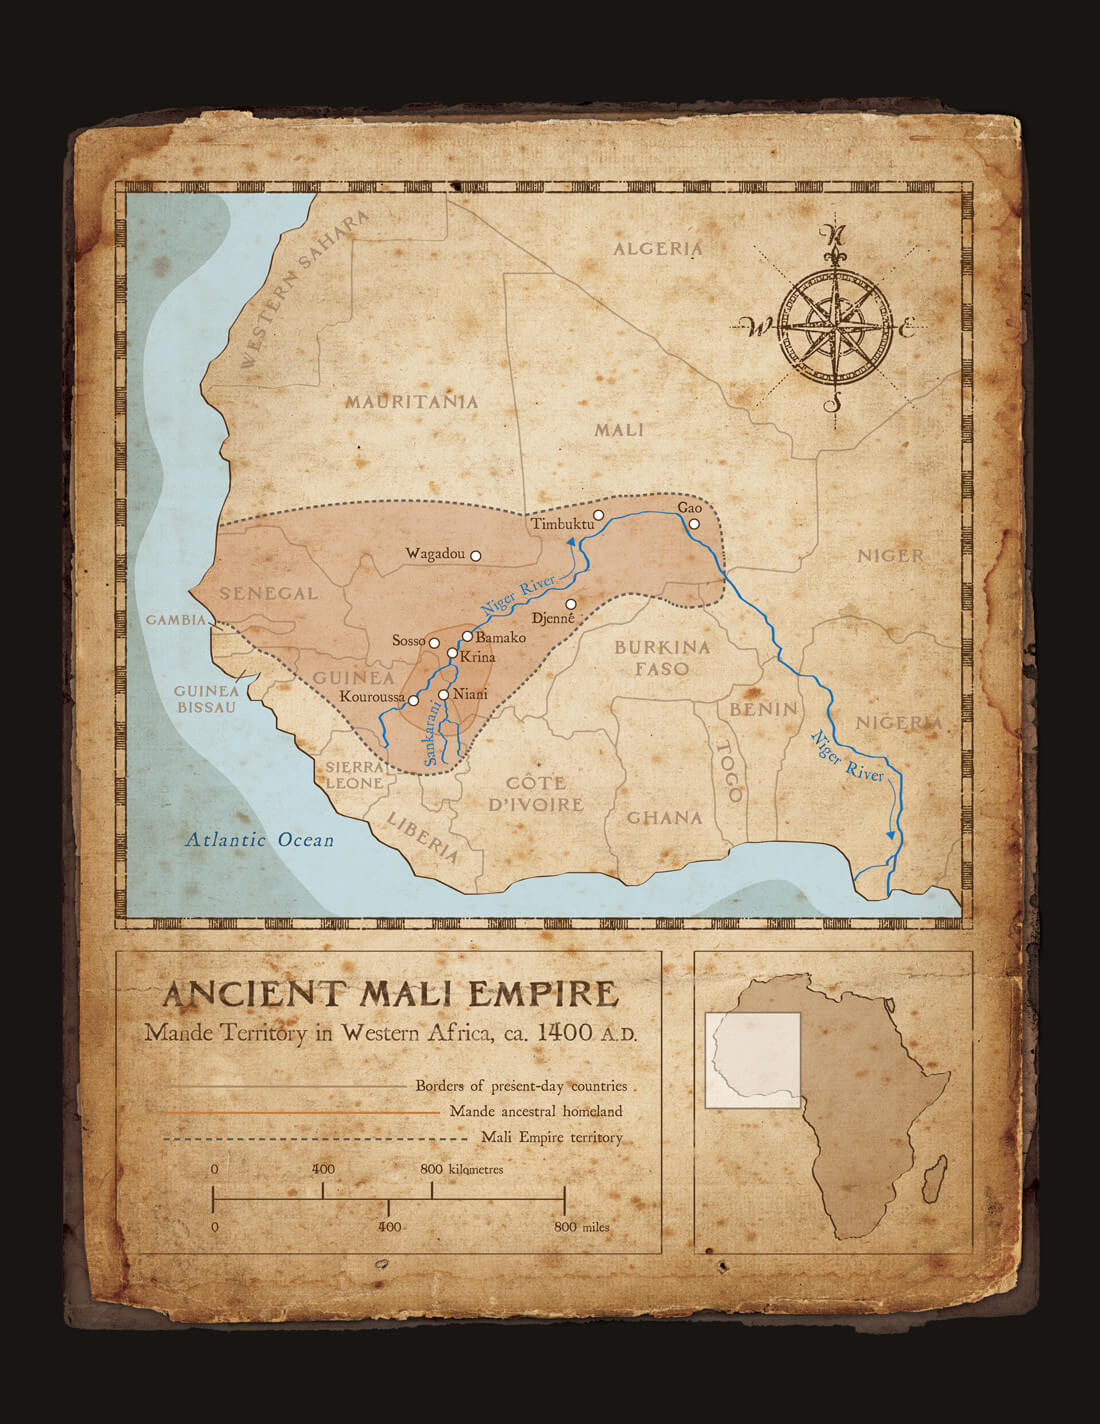 Ancient Mali Empire Map on niger river map, kingdom of ndongo map, kongo empire map, tenochtitlan map, gupta empire map, delhi sultanate map, zanzibar map, songhai empire map, africa map, goryeo map, ethiopian empire map, carpatho-ukraine map, canary islands map, timbuktu map, kingdom of kongo map, incan empire map, songhai geography map, zimbabwe map, democratic republic of the congo map, west african empires map,